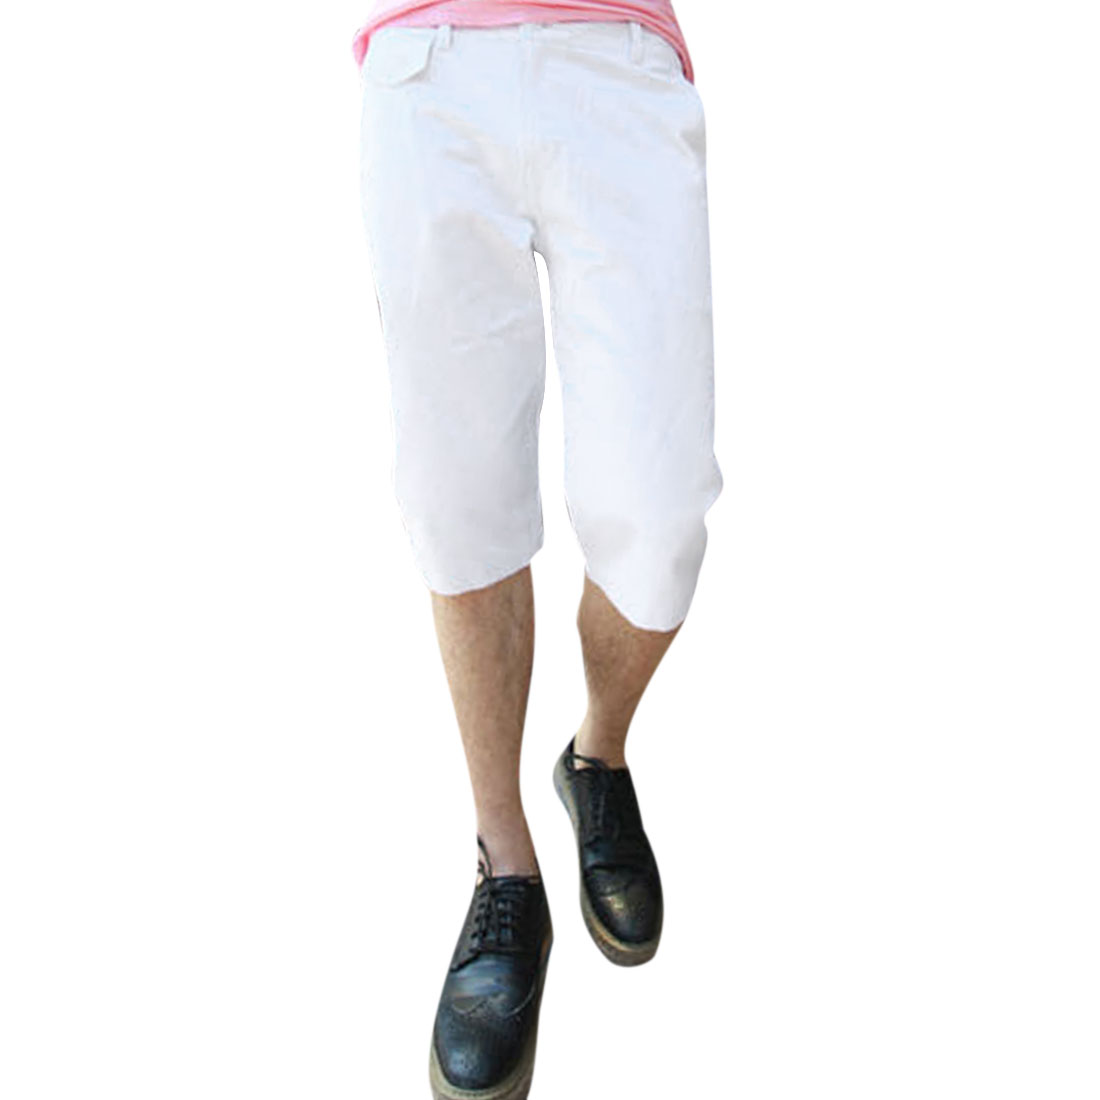 Man Slant Pockets Belted Loop Fashion Shorts Trousers White W36